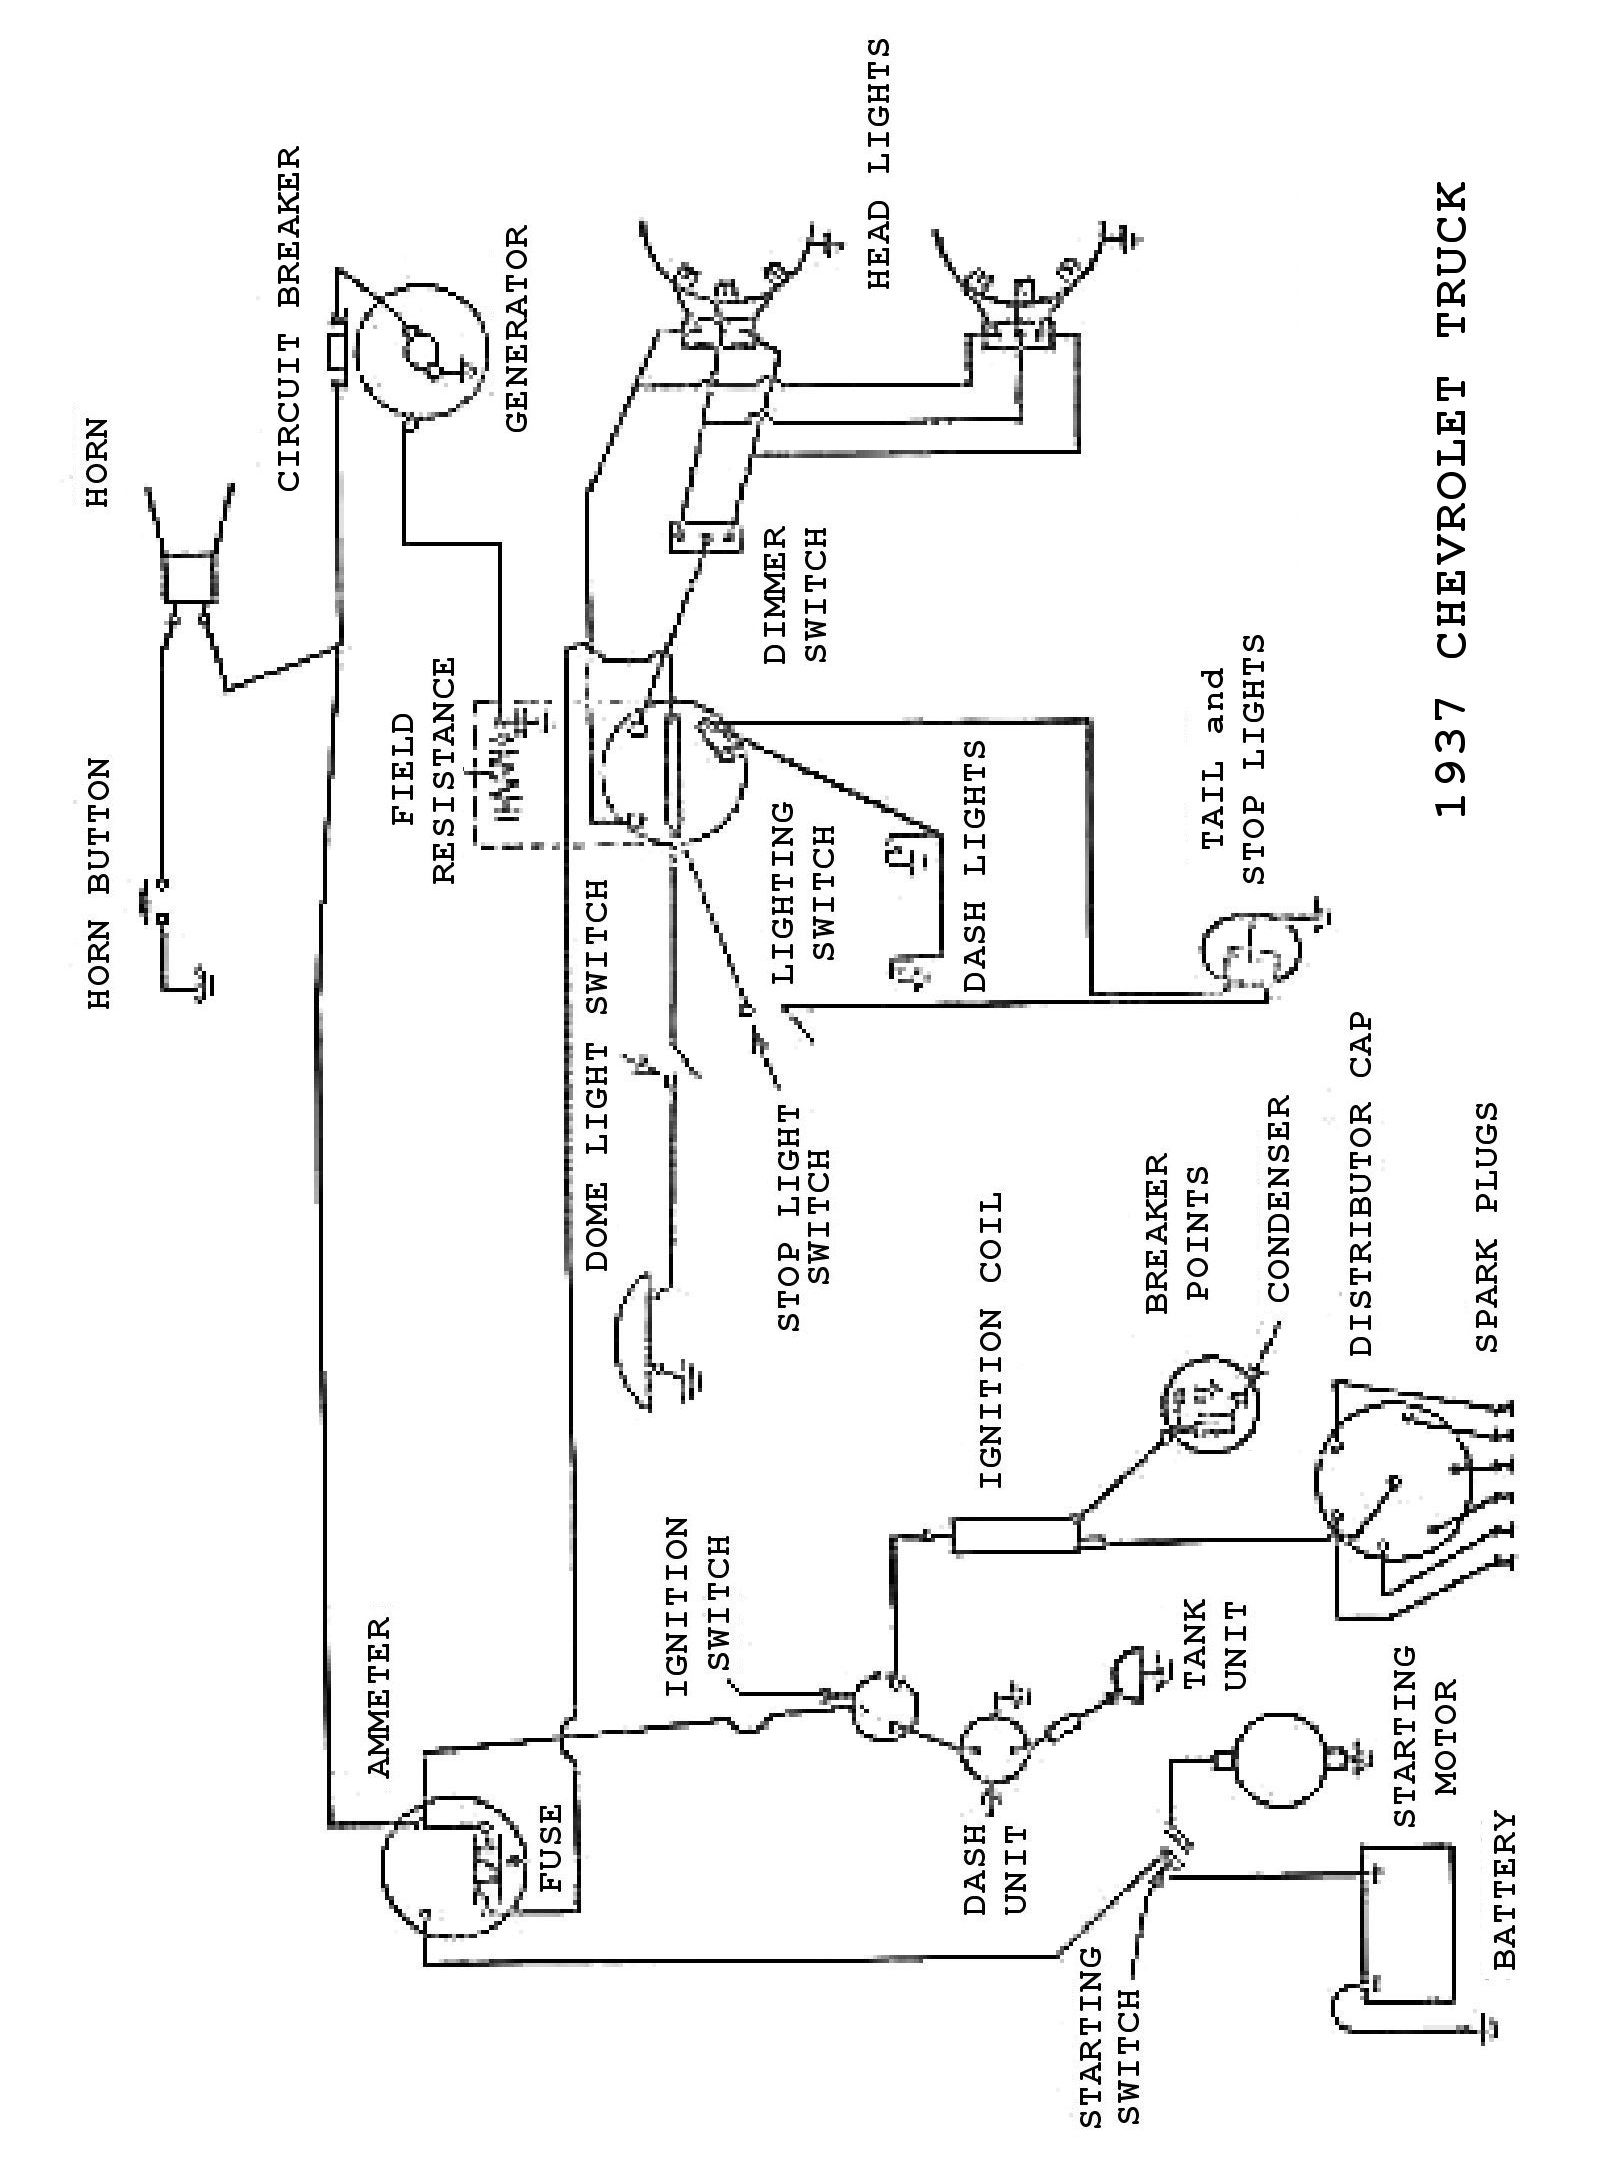 1924 ford model t wiring diagram subwoofer rockford chevy diagrams 1937 truck